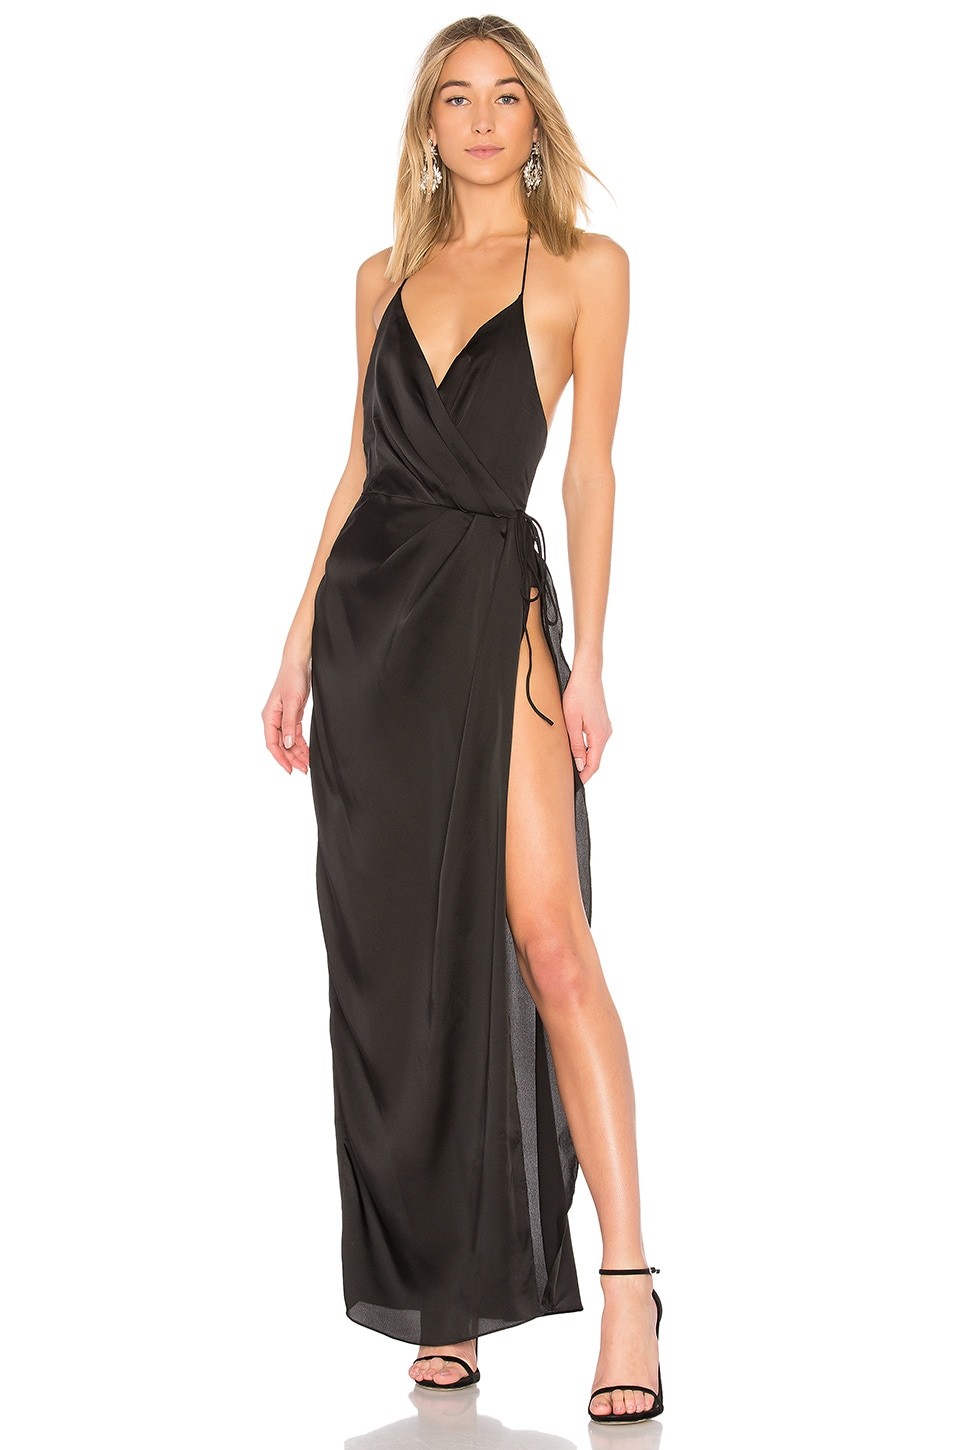 X by NBD So Anxious Gown in Black